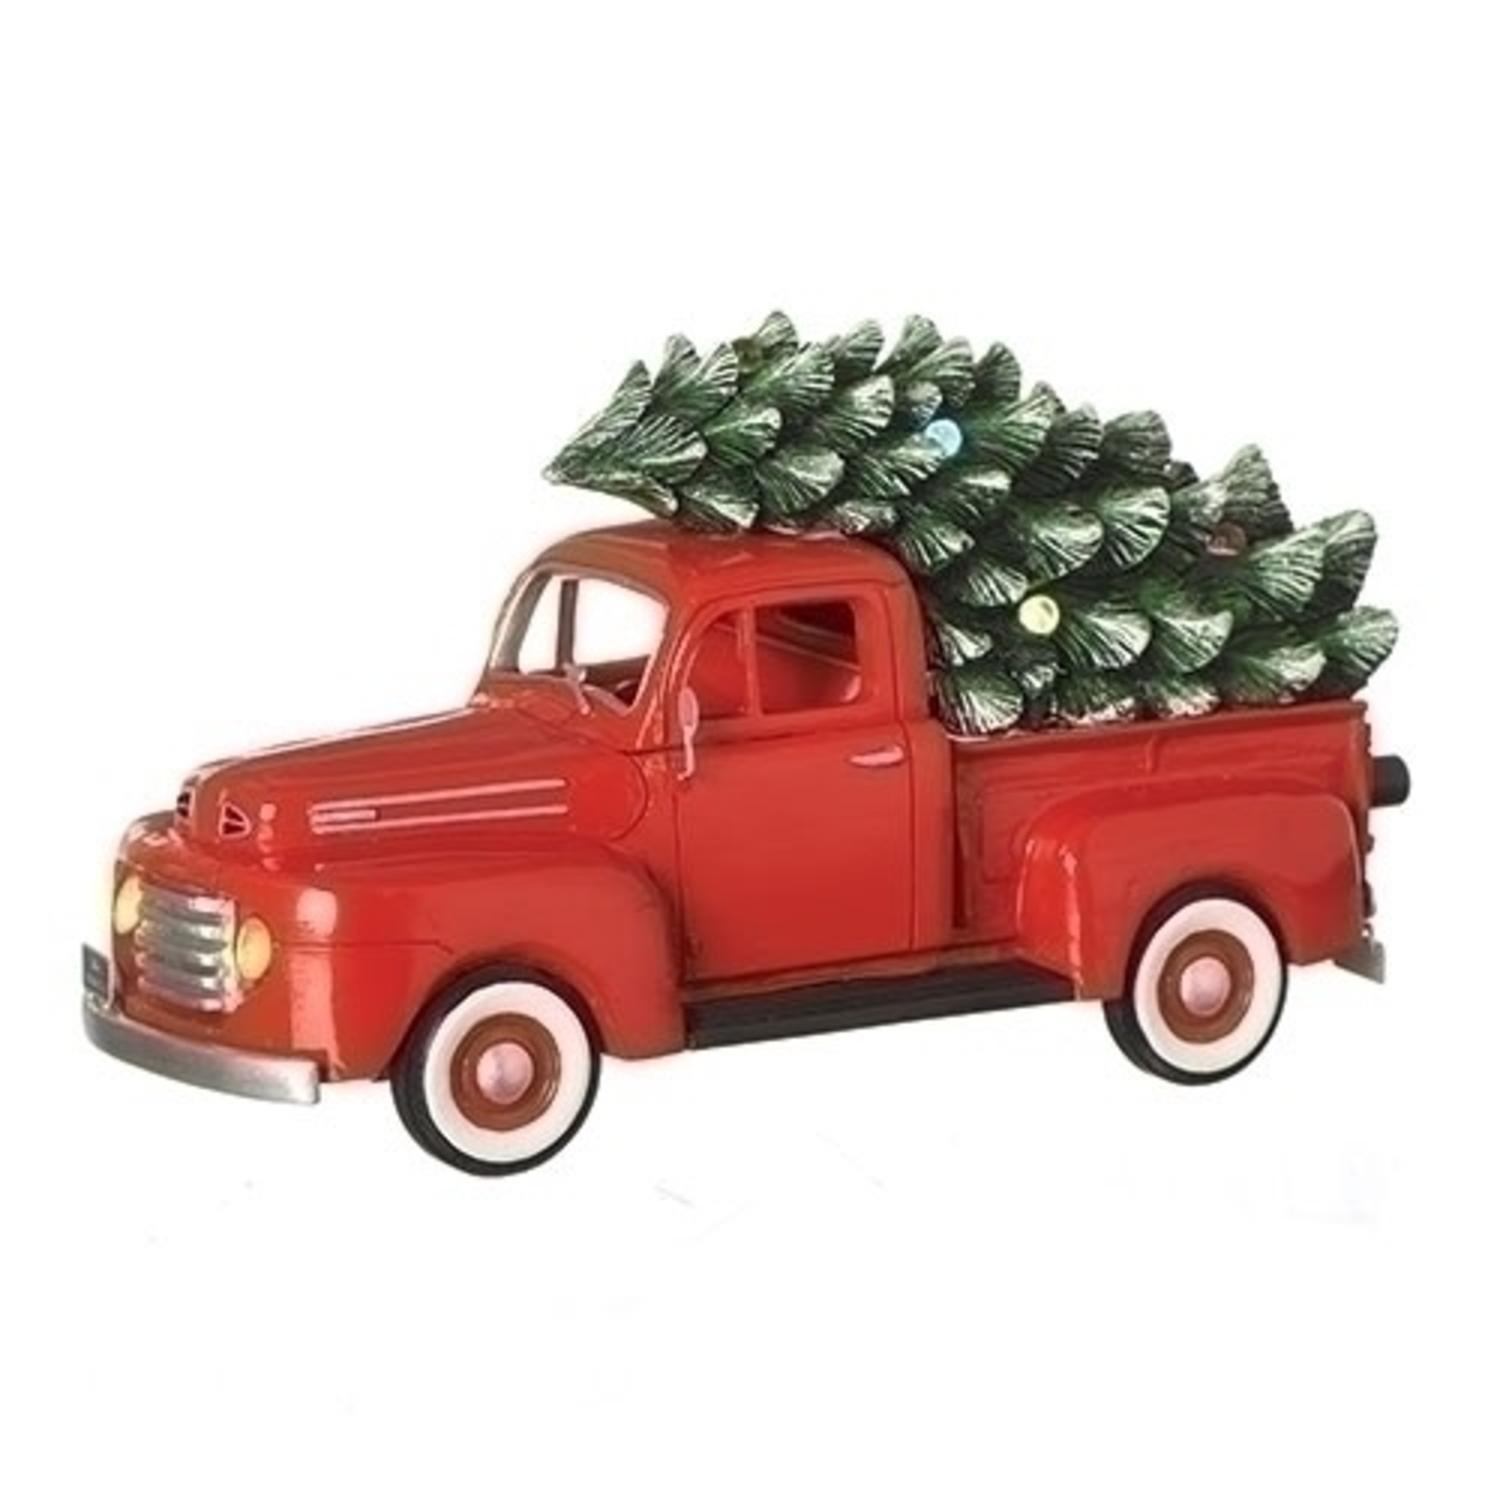 Set of 2 Musical 1948 Ford Truck Retro Christmas Decoration 10.25""